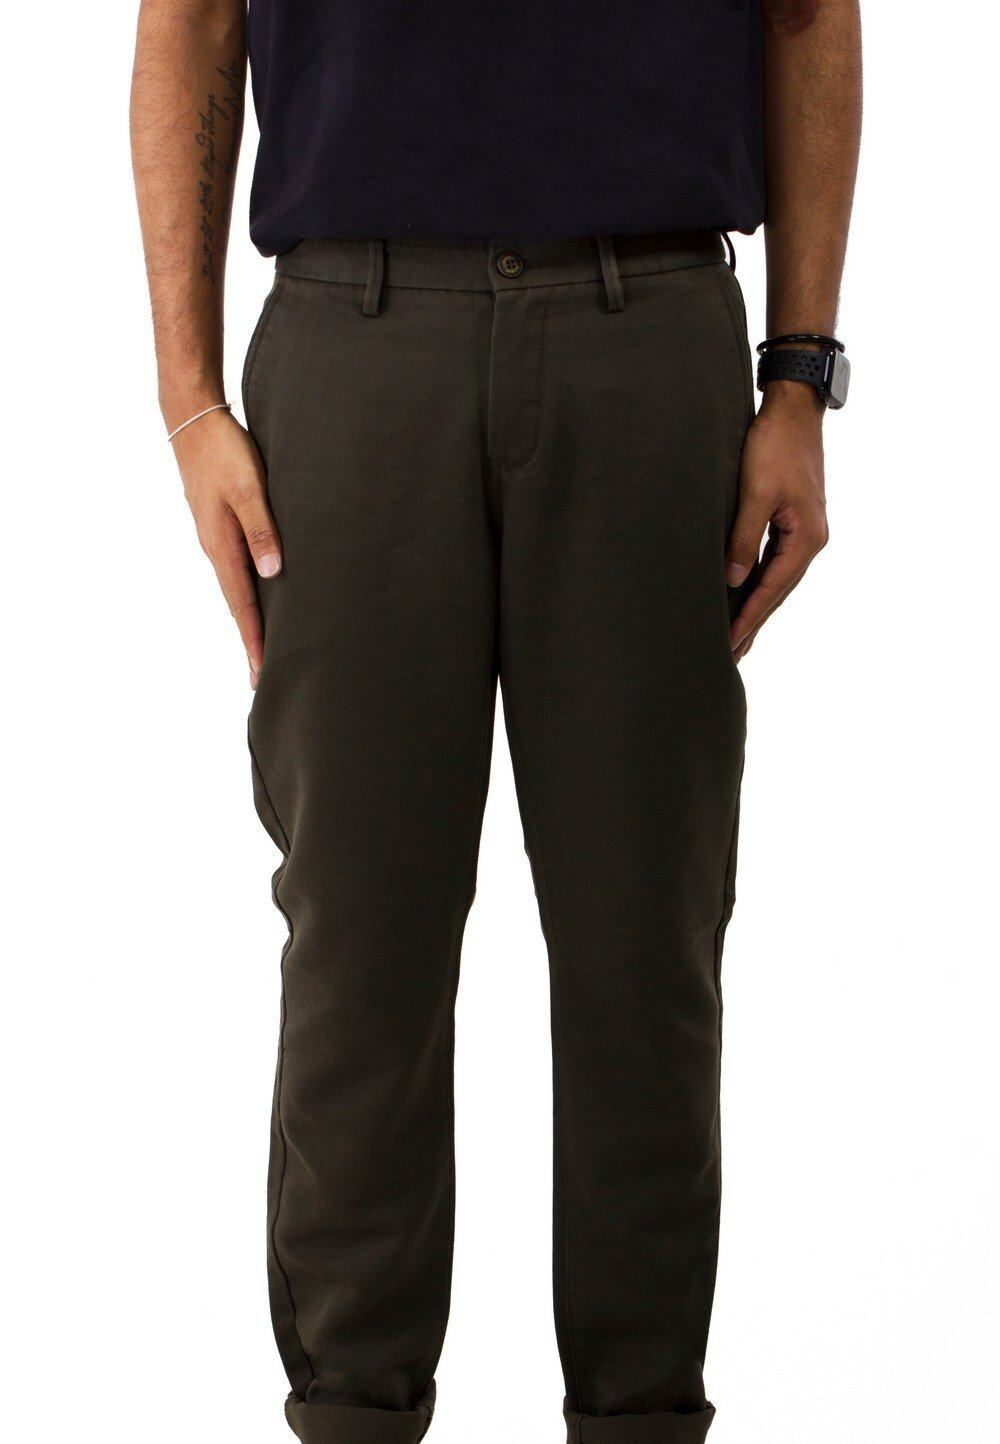 Exhaust Plain Smart Chino Long Pants 763